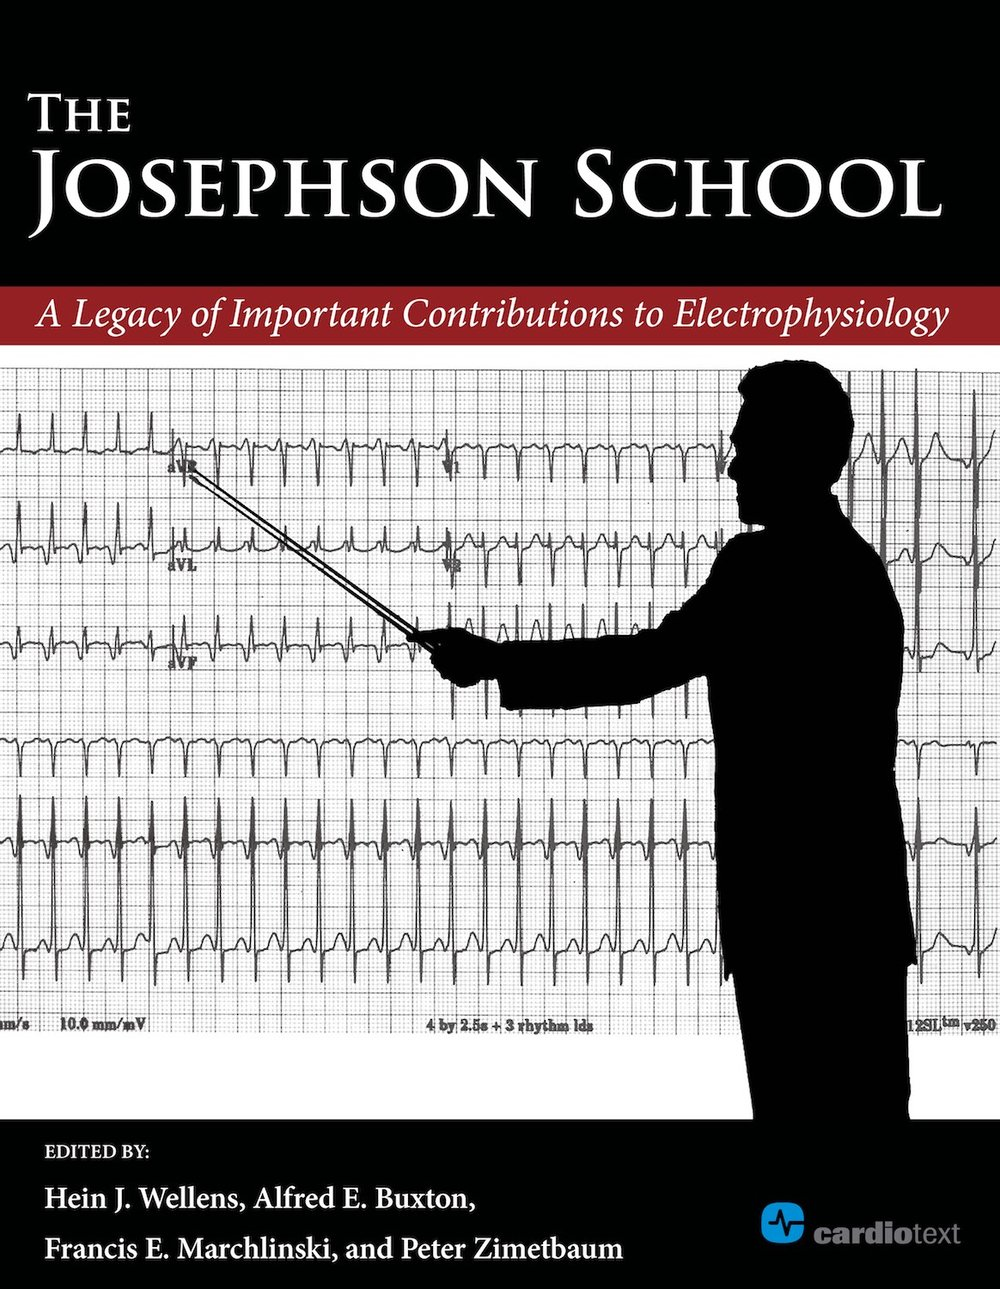 The Josephson School: A Legacy of Important Contributions to Electrophysiology